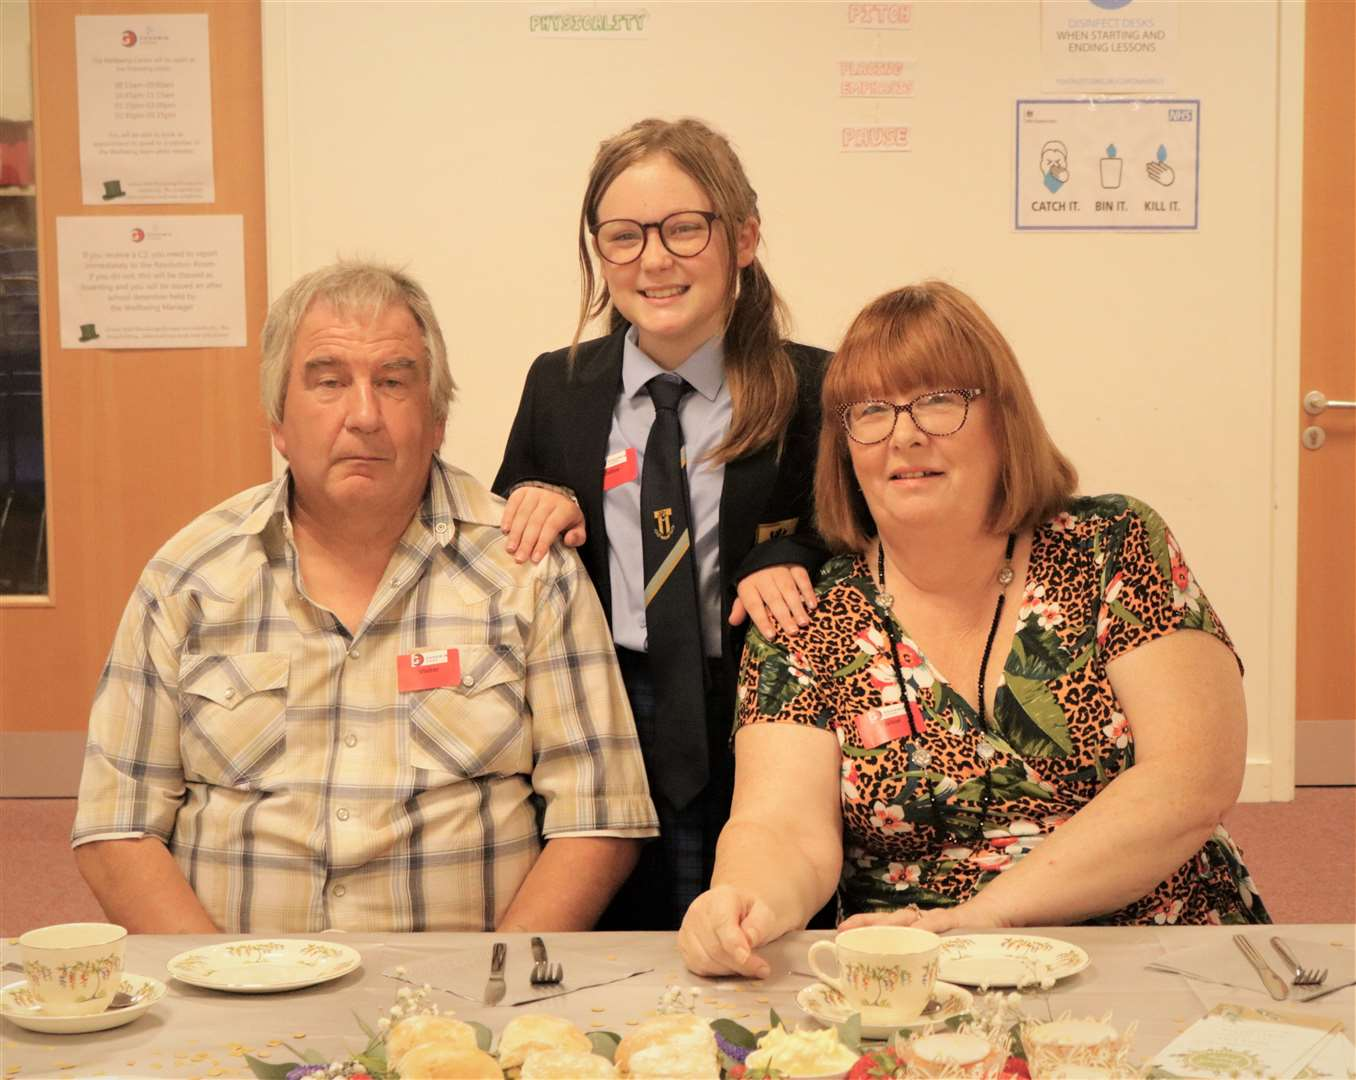 Kirsty Gaythwaite's parents Maurice and Sonya attended the surprise tea party with Kirsty's daughter Grace